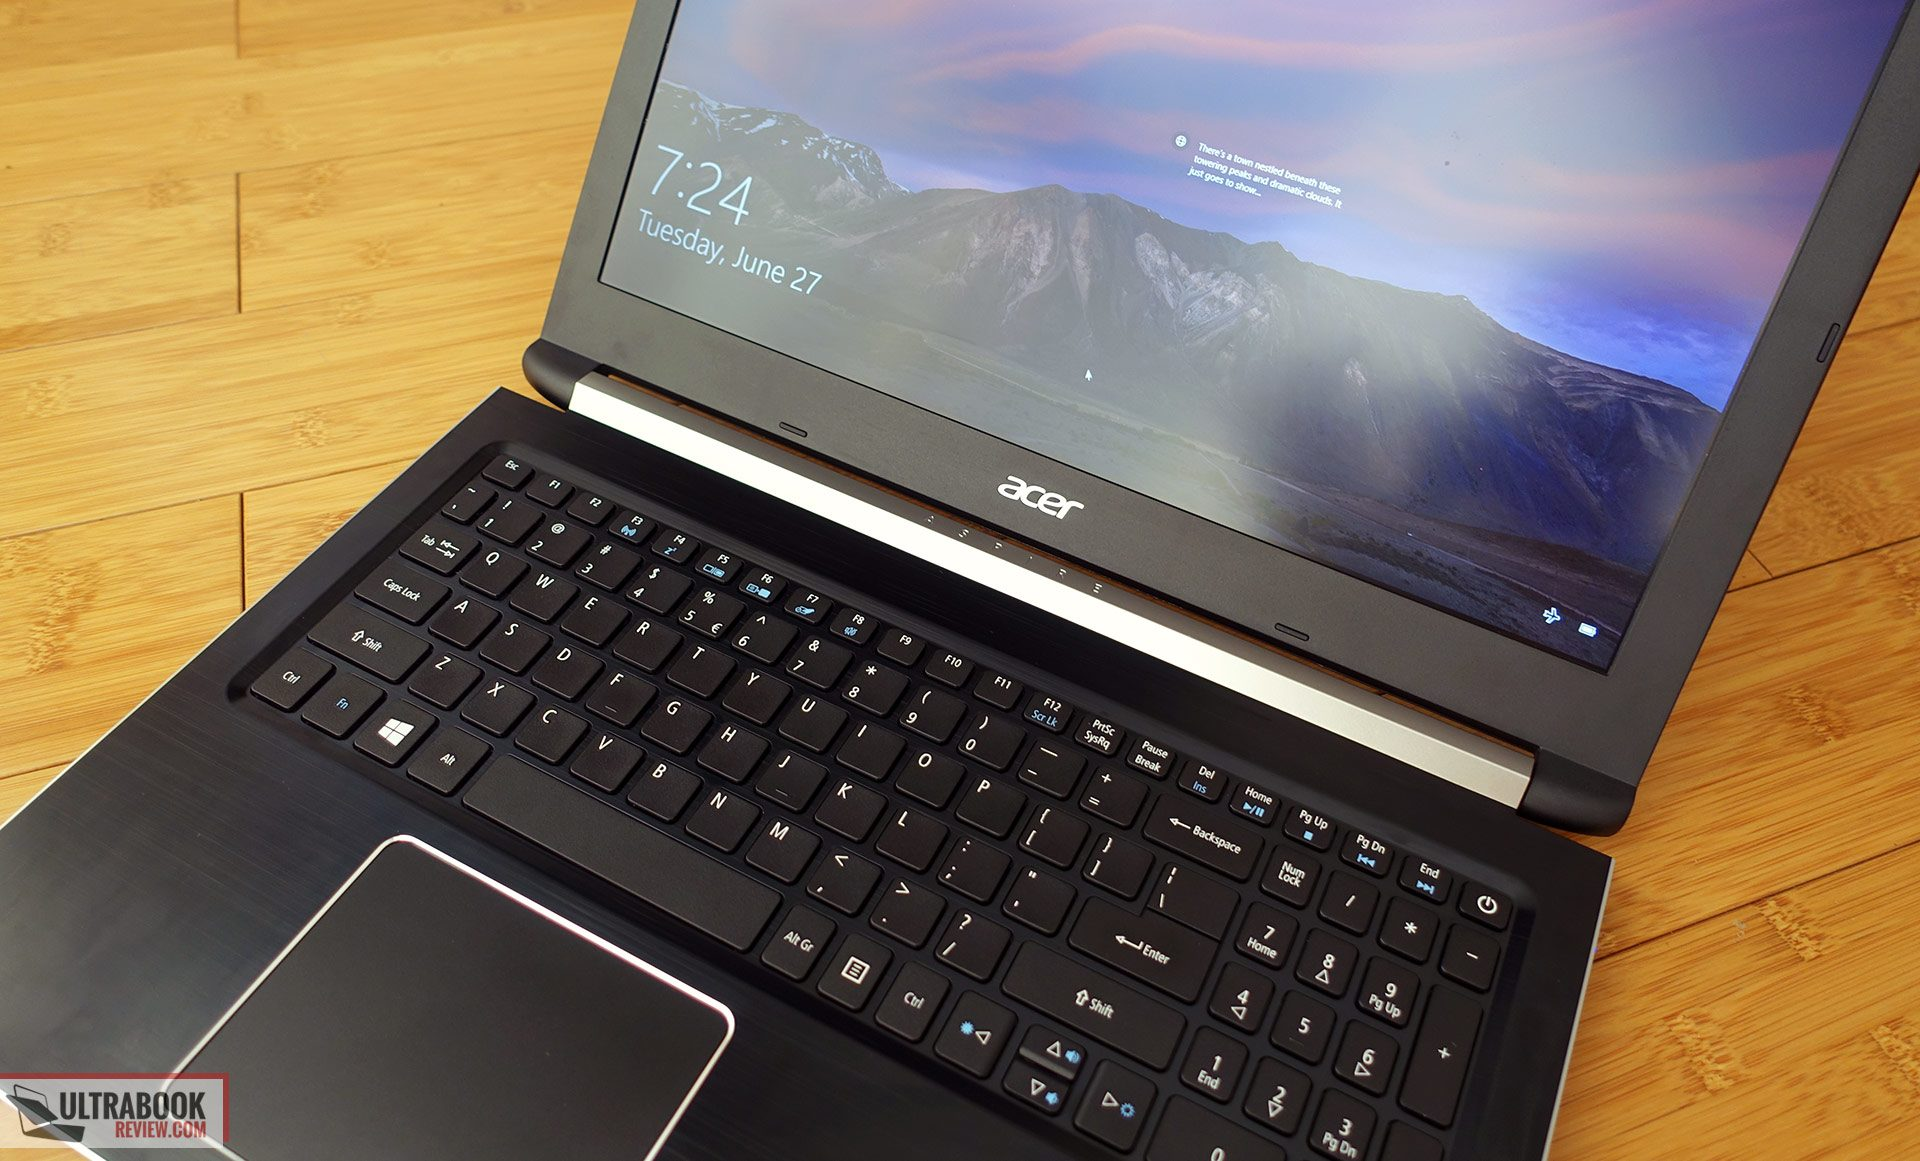 Acer Aspire 5 A515-51 review - an excellent and affordable